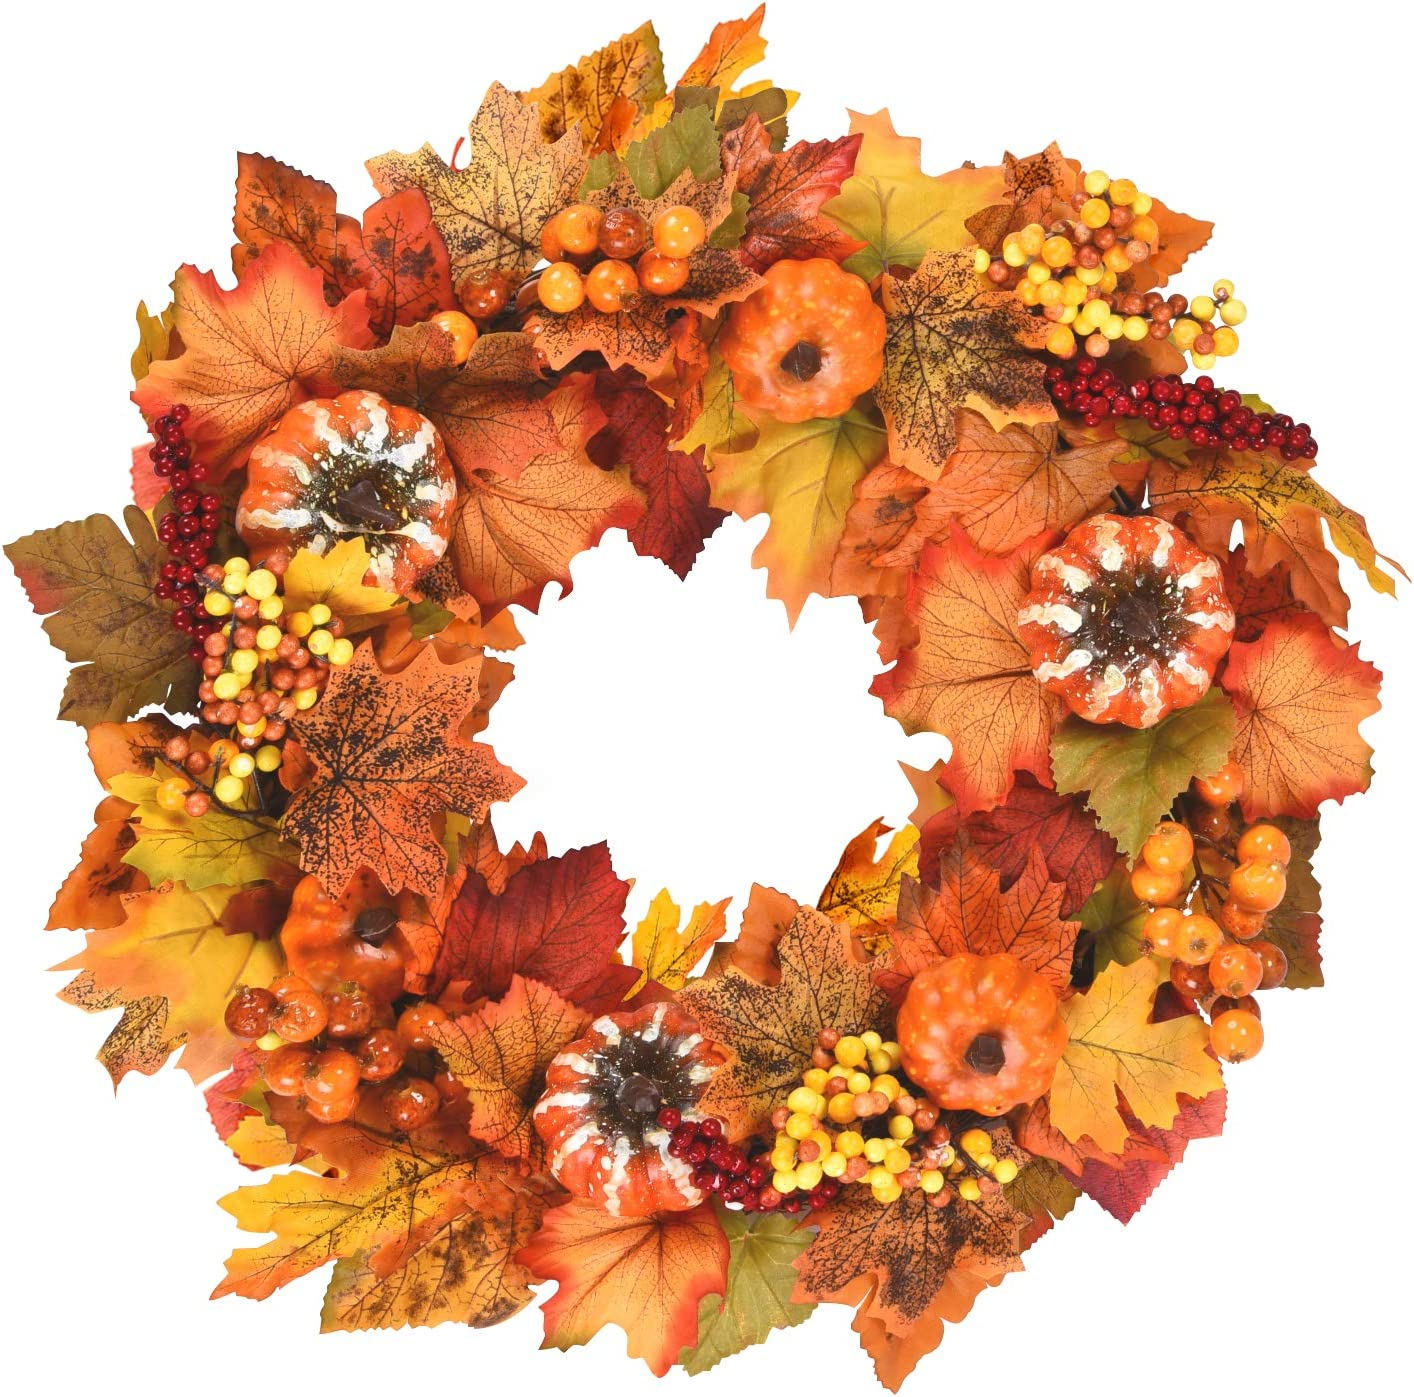 Fall Wreath with Pumpkins, Berries, Maple Leaves Artificial Fall Berry Wreath Harvest Wreath Fall for Autumn Wedding Party Thanksgiving Home Decor